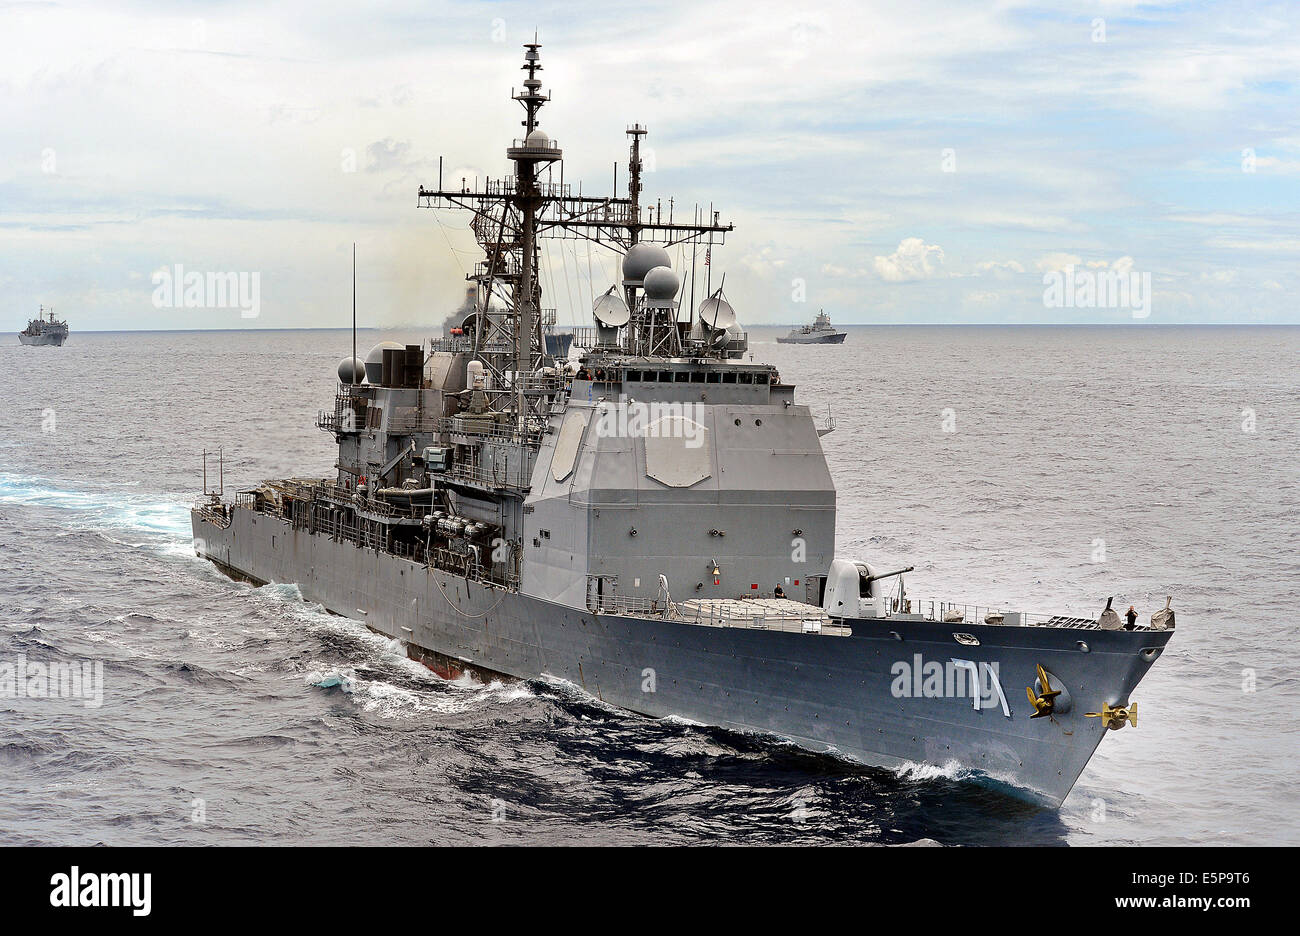 A US Navy Ticonderoga-class guided missile cruiser USS Cape St. George in formation during Rim of the Pacific Exercise - Stock Image